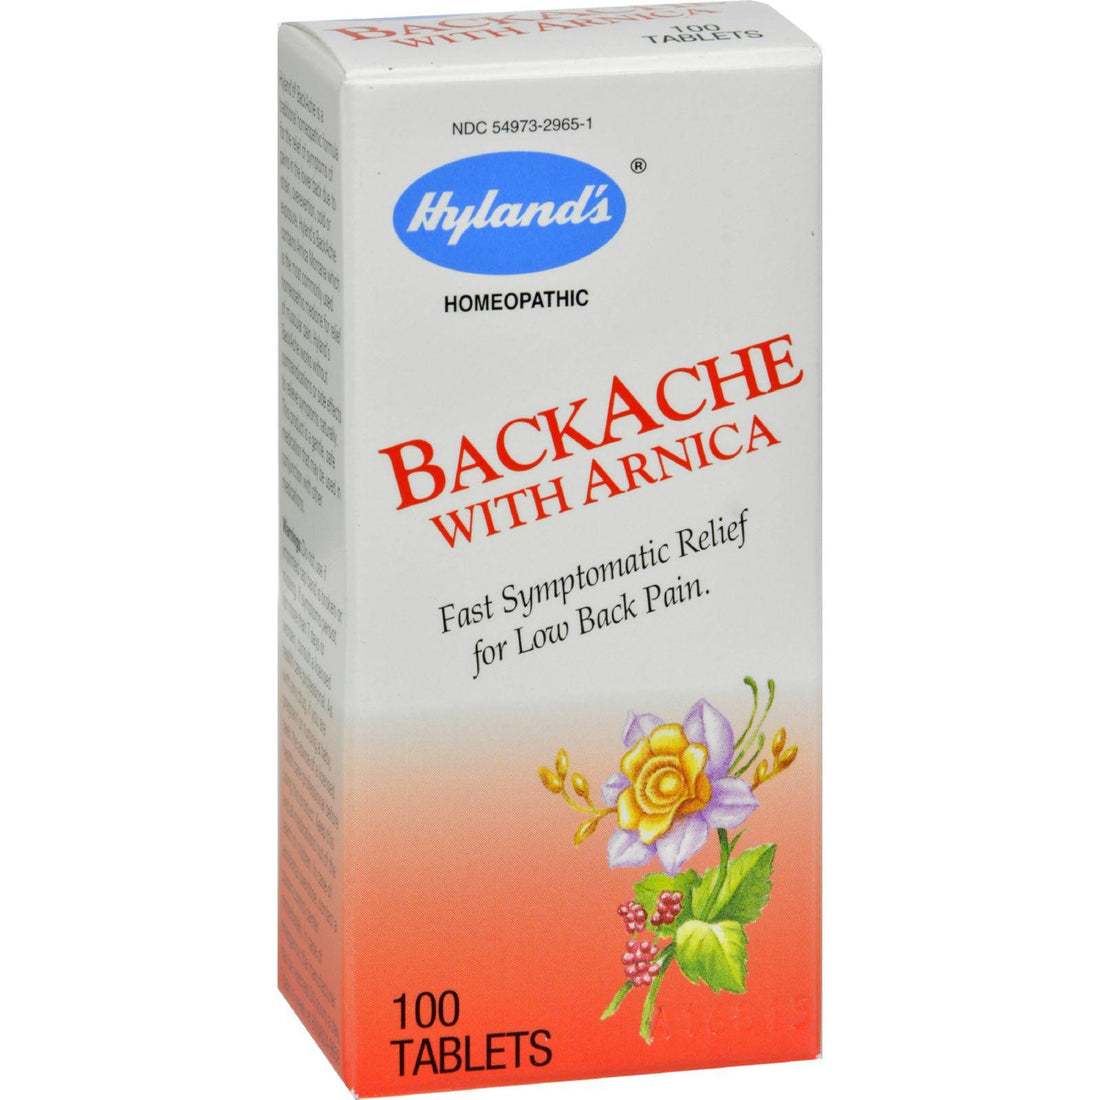 Mother Mantis: Hyland's Backache With Arnica - 100 Tablets Hyland's